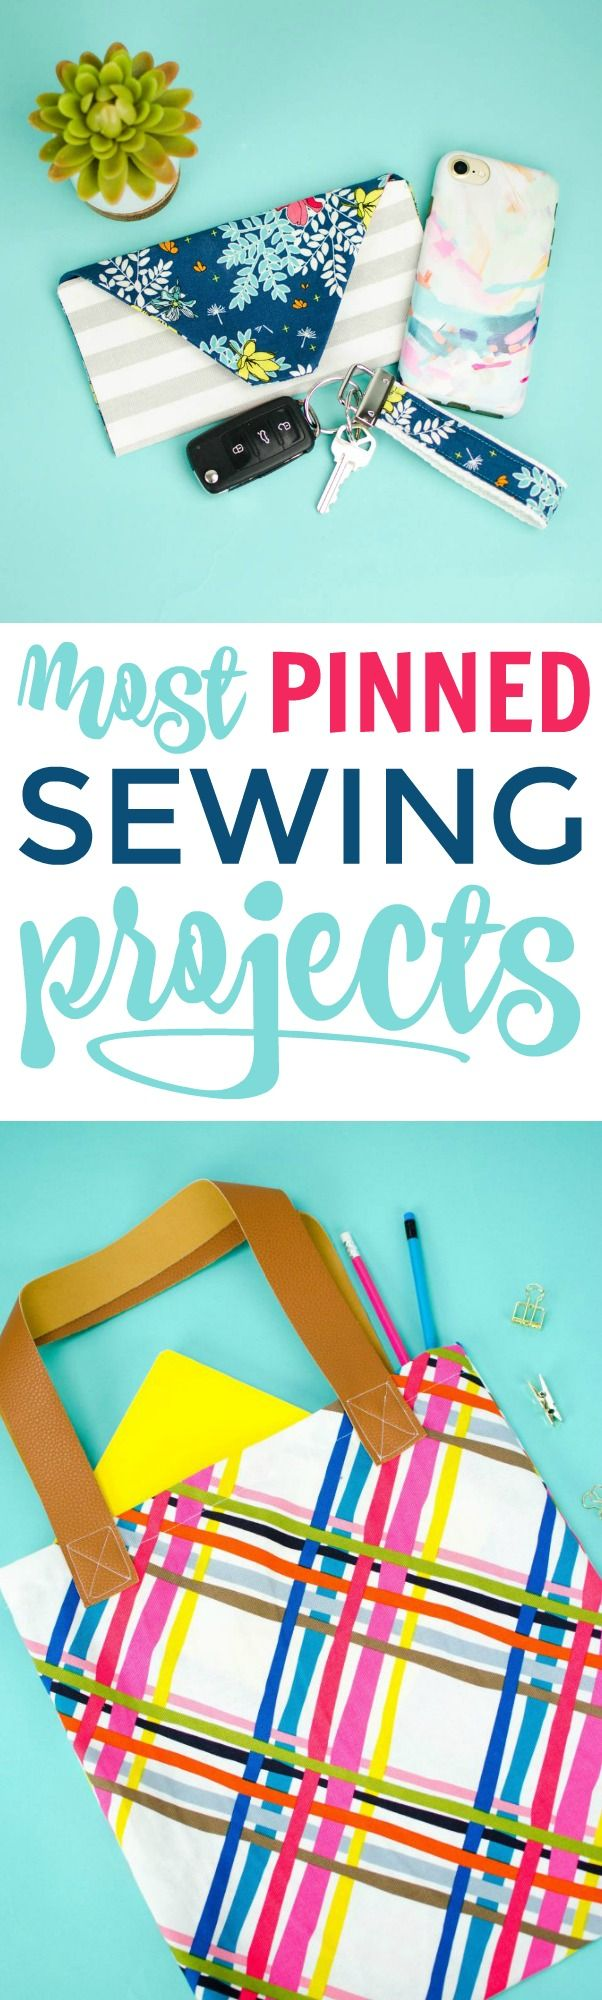 Check out our most Pinned Sewing Projects. From clothing to  accessories to home...